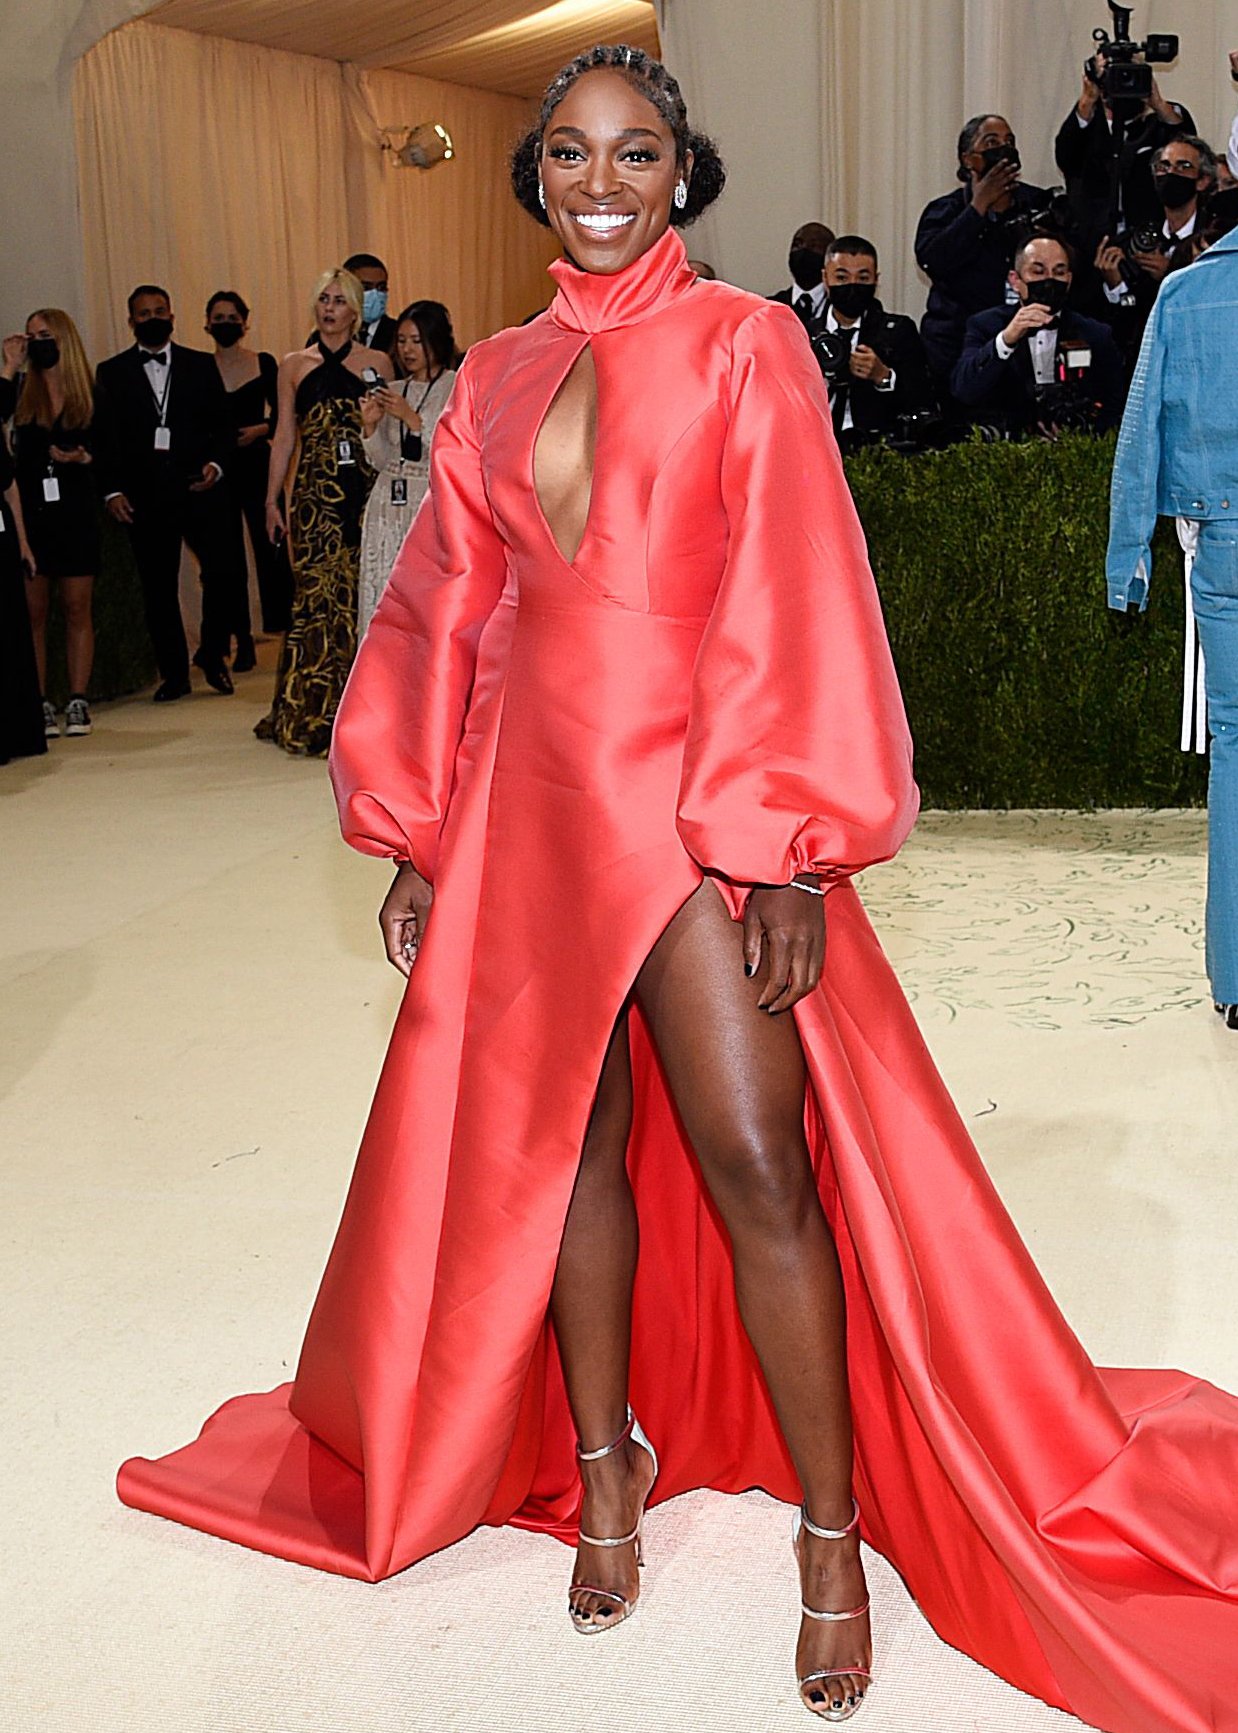 """Sloane Stephens attends The Metropolitan Museum of Art's Costume Institute benefit gala celebrating the opening of the """"In America: A Lexicon of Fashion"""" exhibition, in New York 2021 MET Museum Costume Institute Benefit Gala, New York, United States - 13 Sep 2021"""